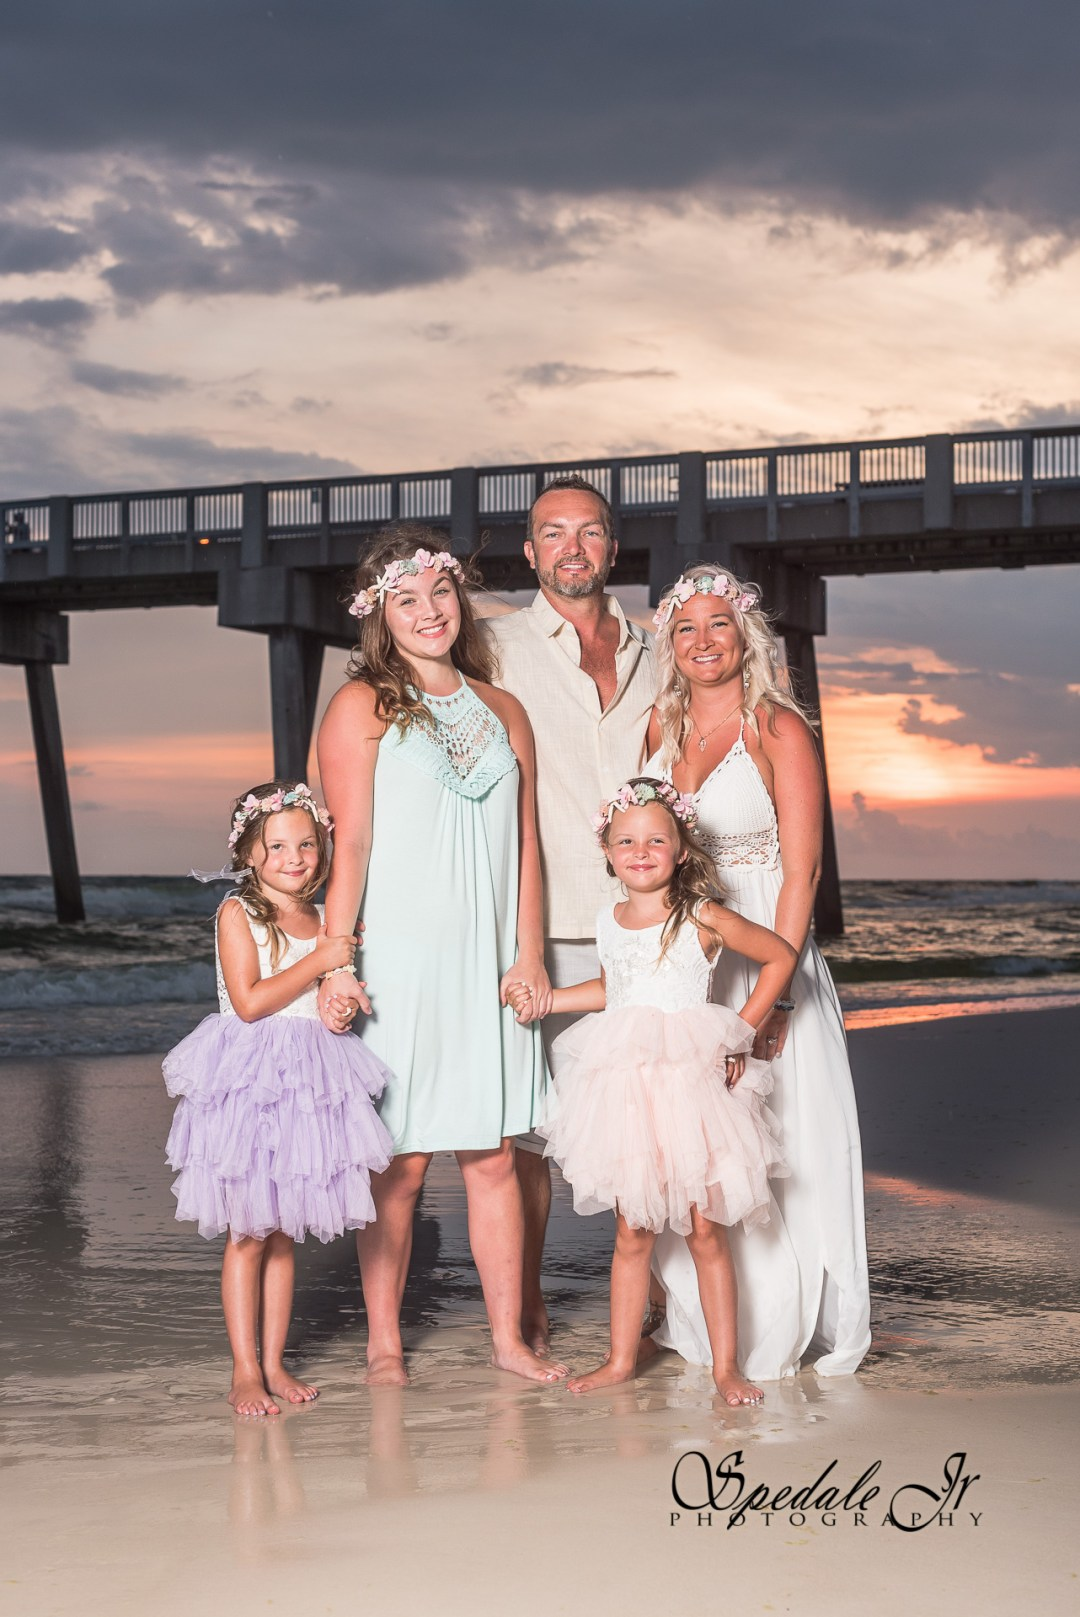 Beach photography by Spedale Jr. Photography -7026